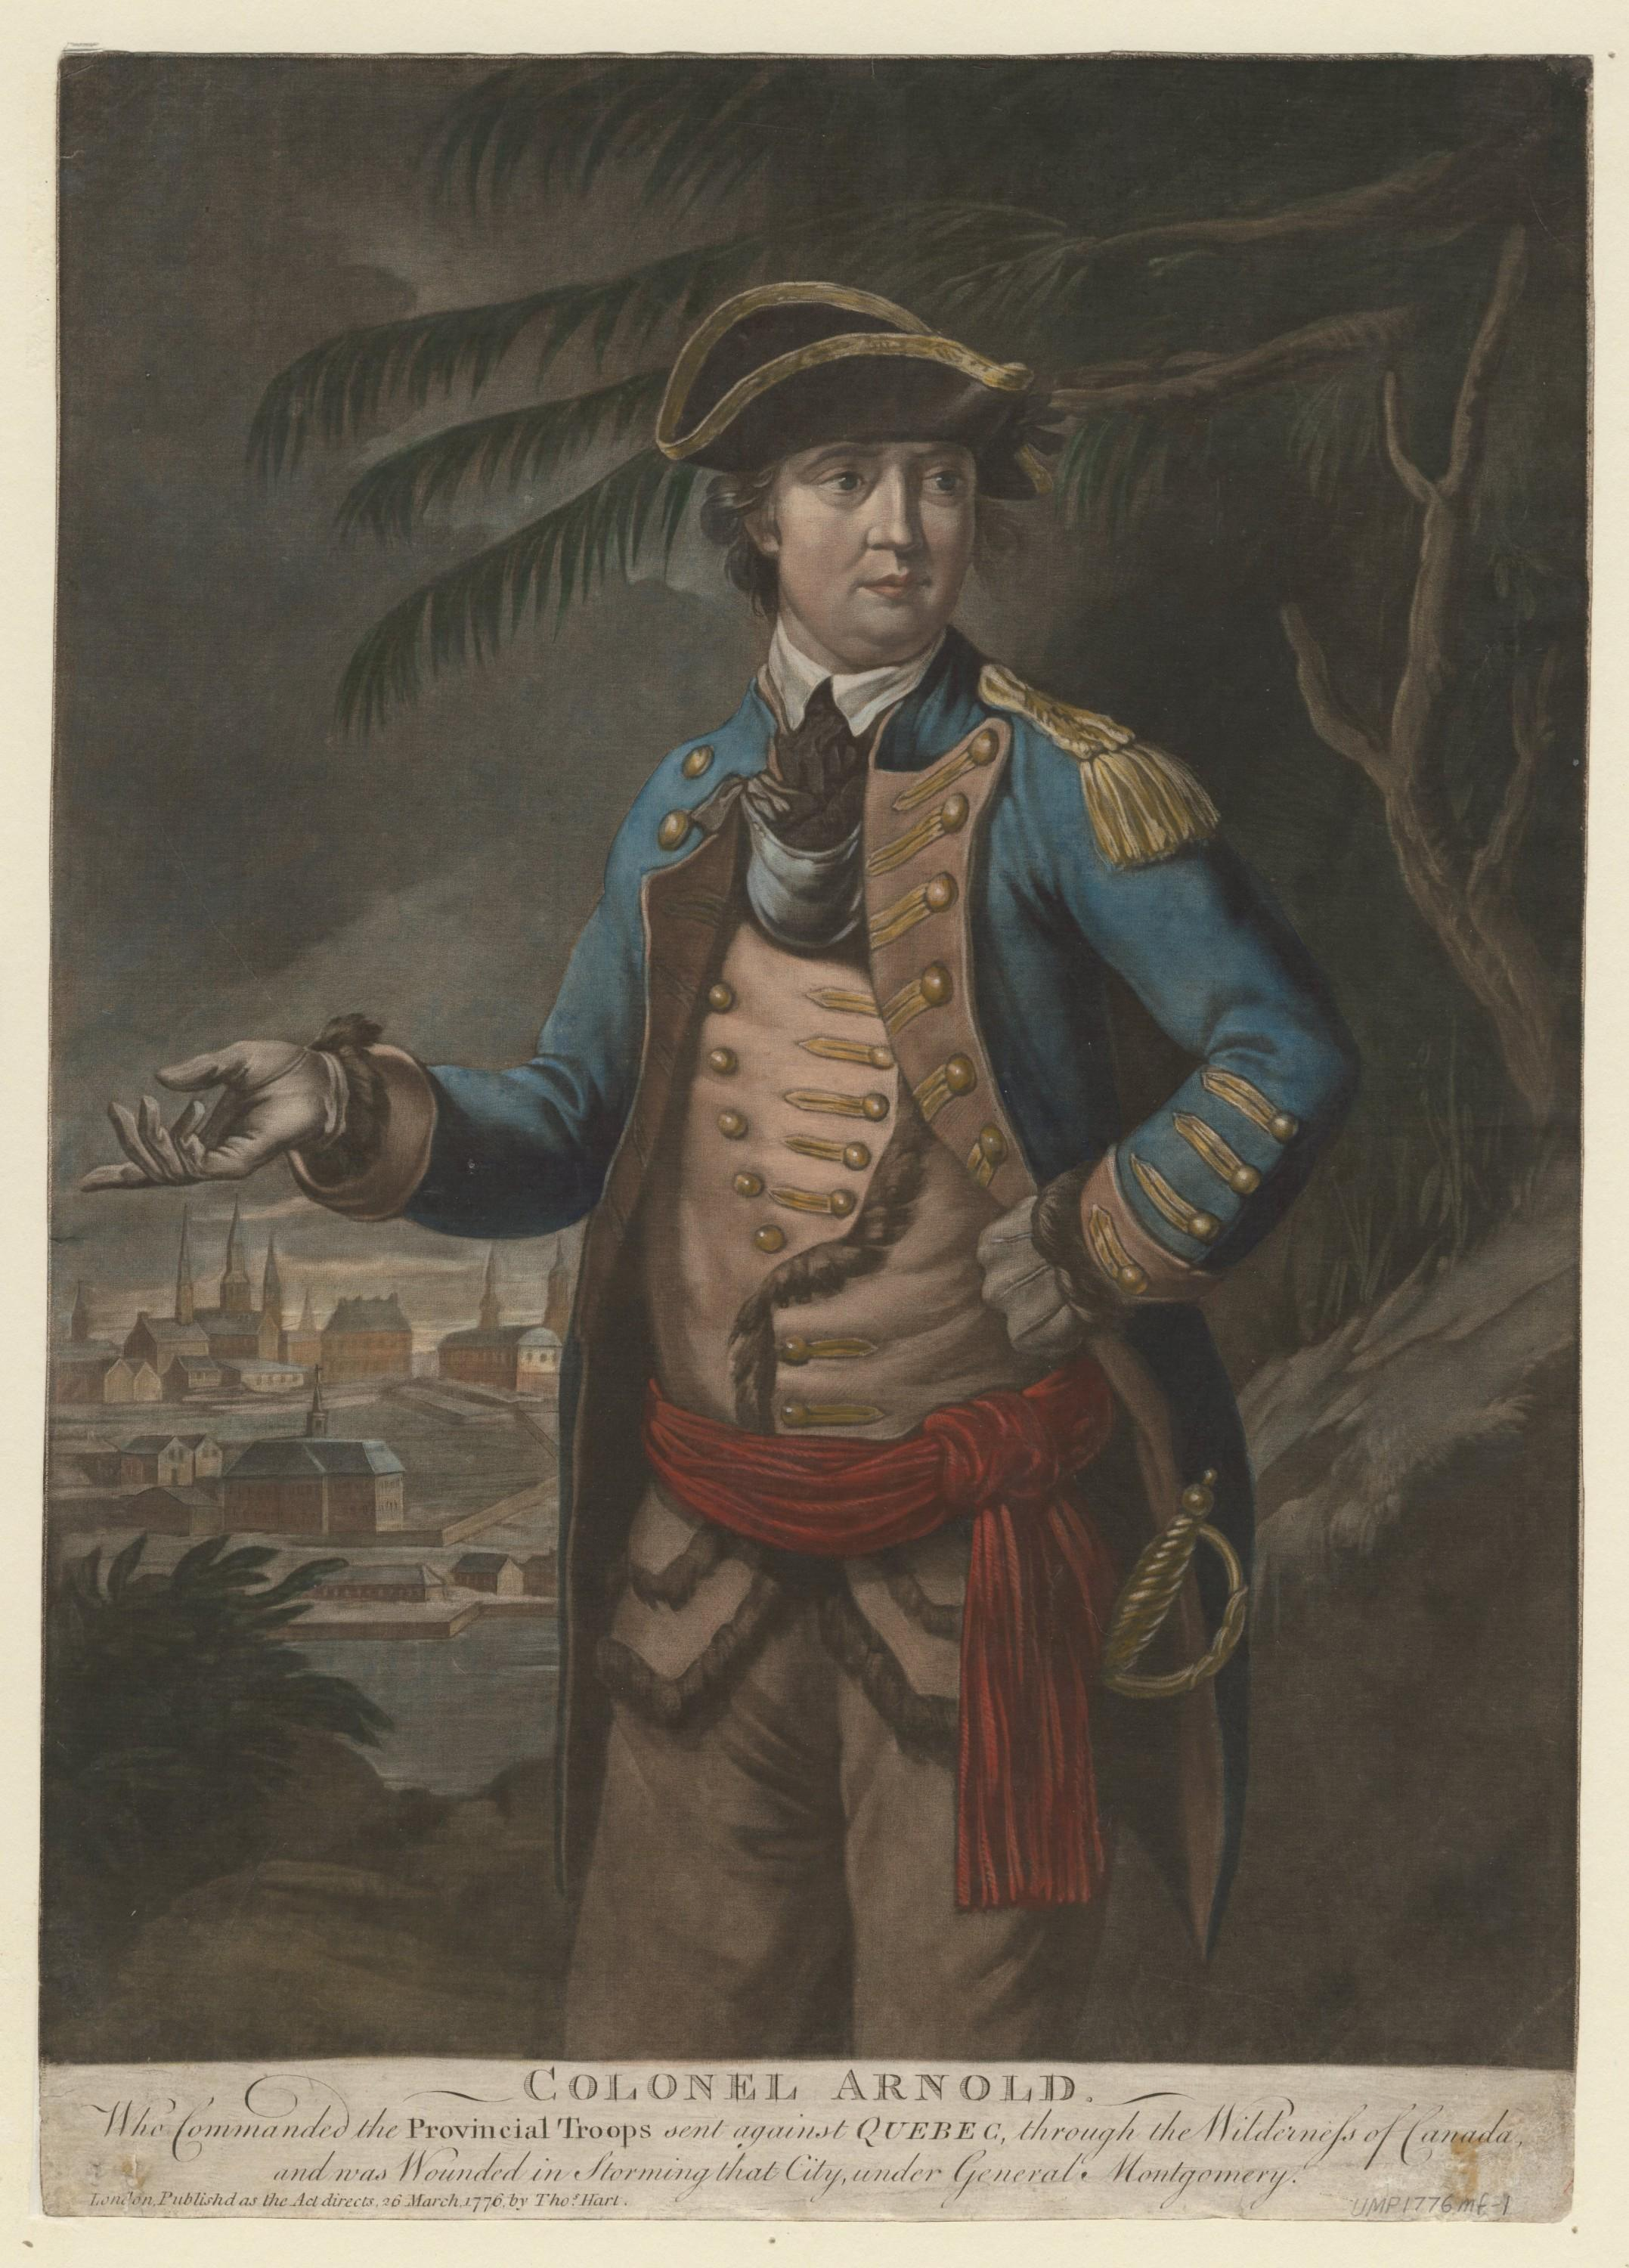 Colonel Arnold, Thomas Hart, 1776, Prints, Drawings and Watercolors from the Anne S.K. Brown Military Collection. Brown Digital Repository. Brown University Library.